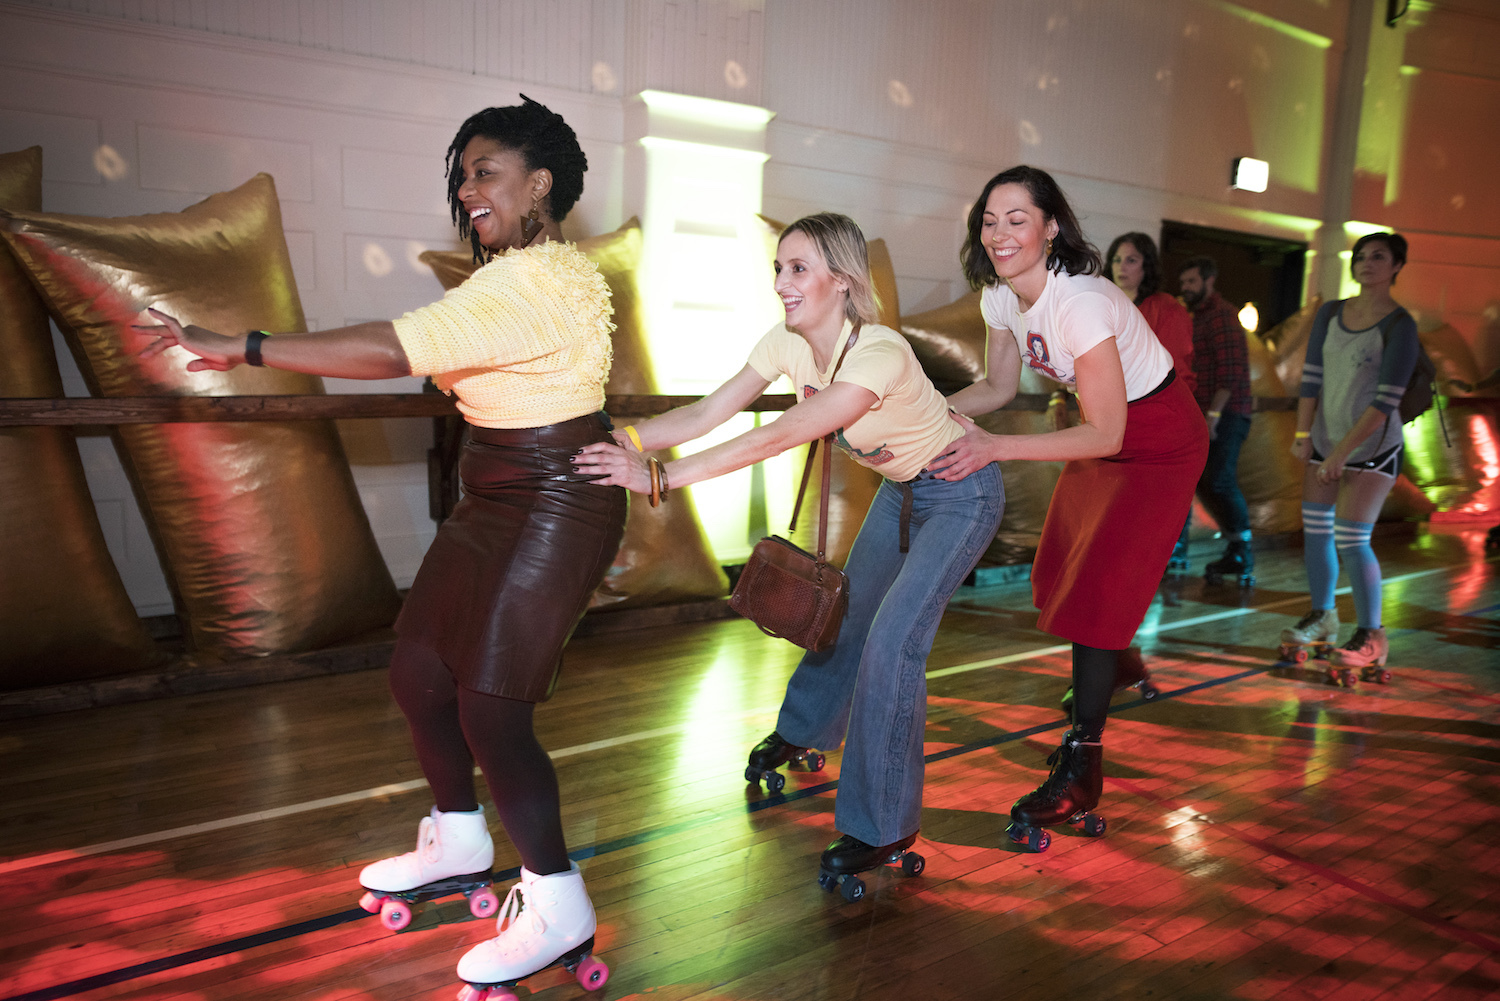 Chicago Athletic Association skate night